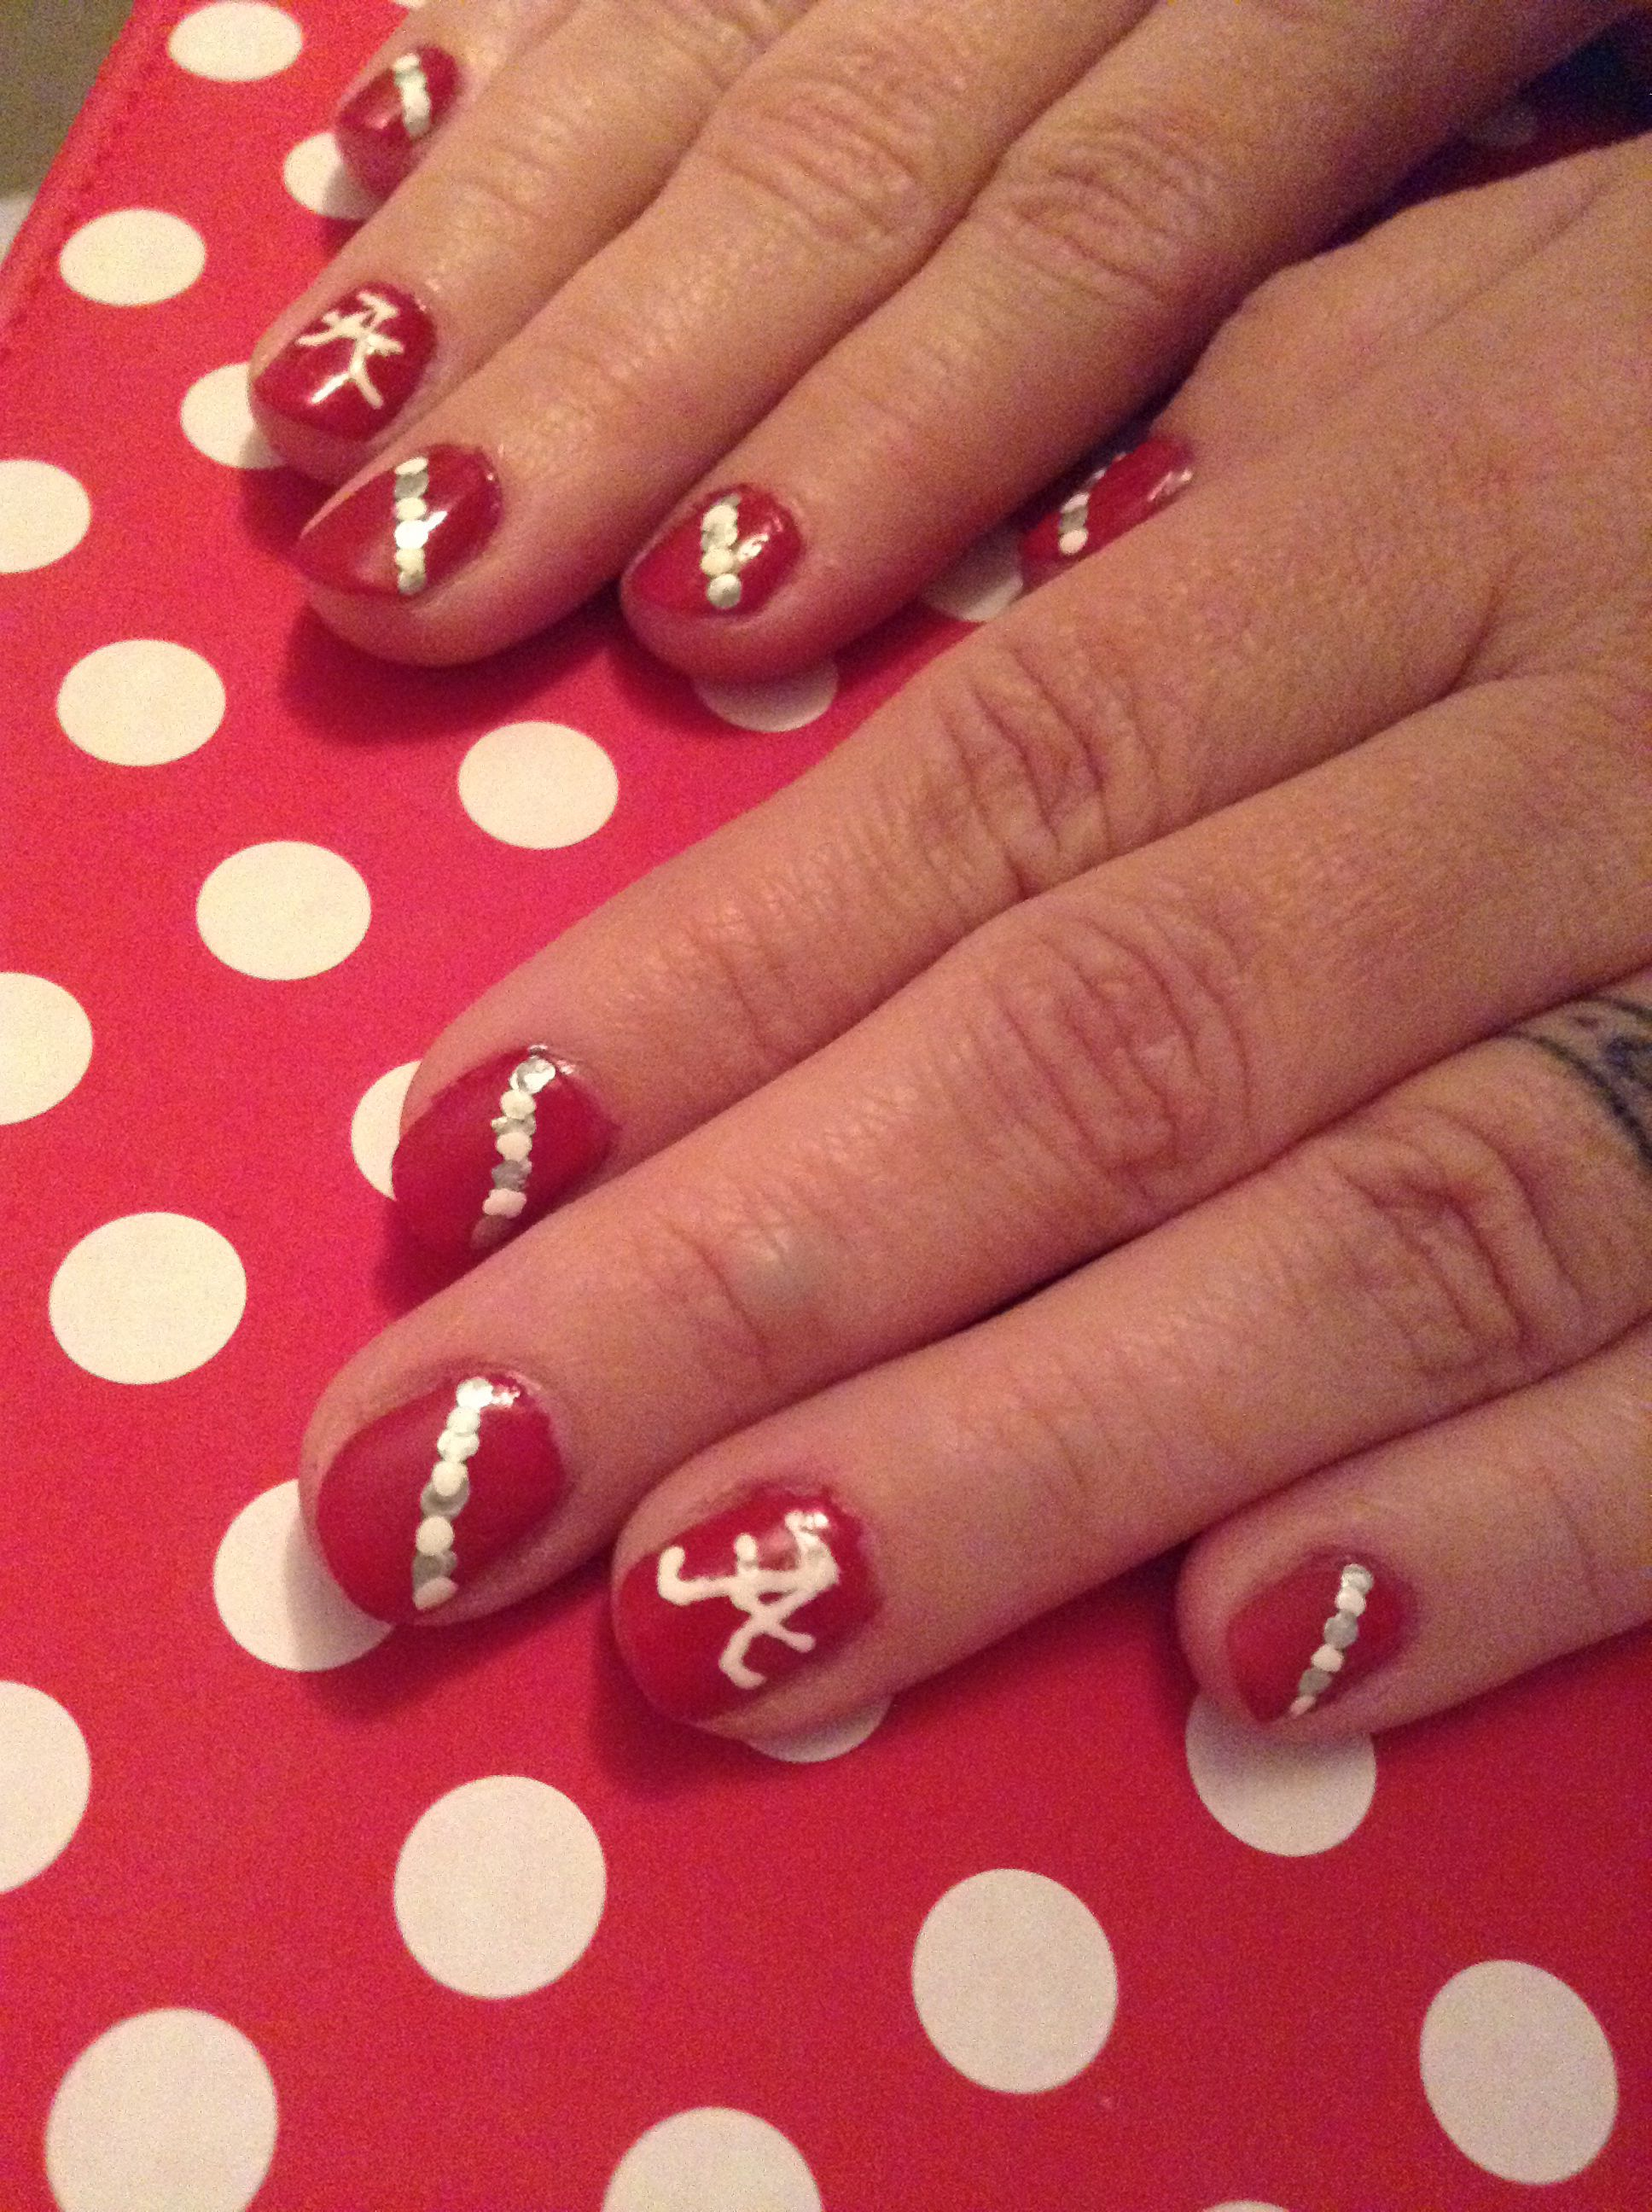 Alabama nails these were done by my beautiful daughter